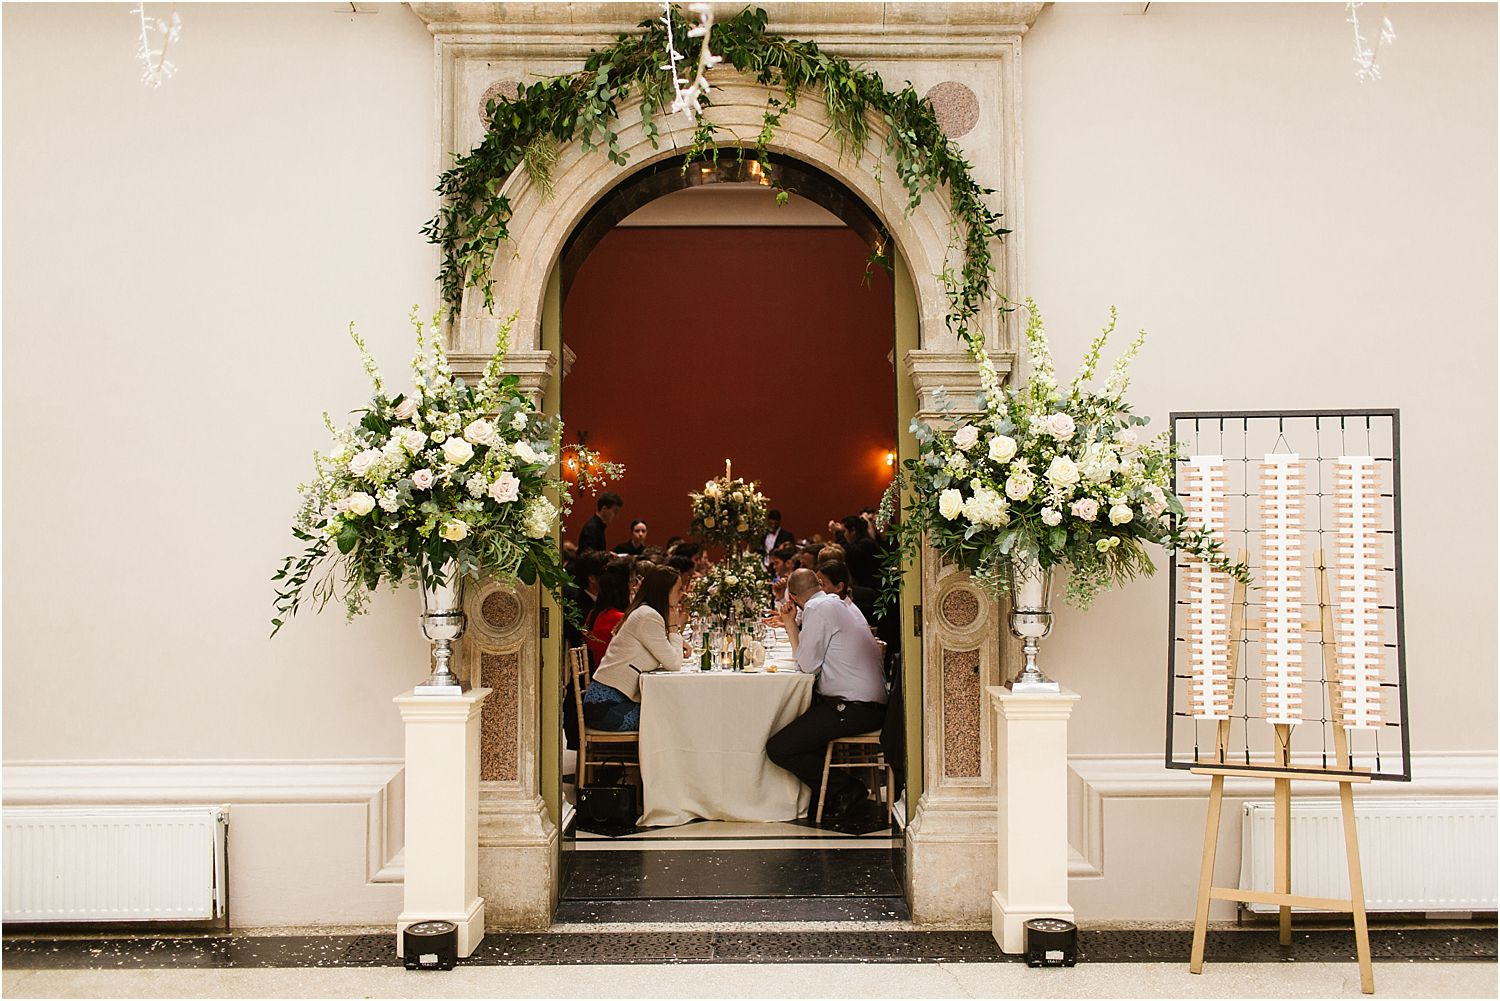 Floral art by The Fine Flowers Company decorates arched doorway at Hampton Court House wedding